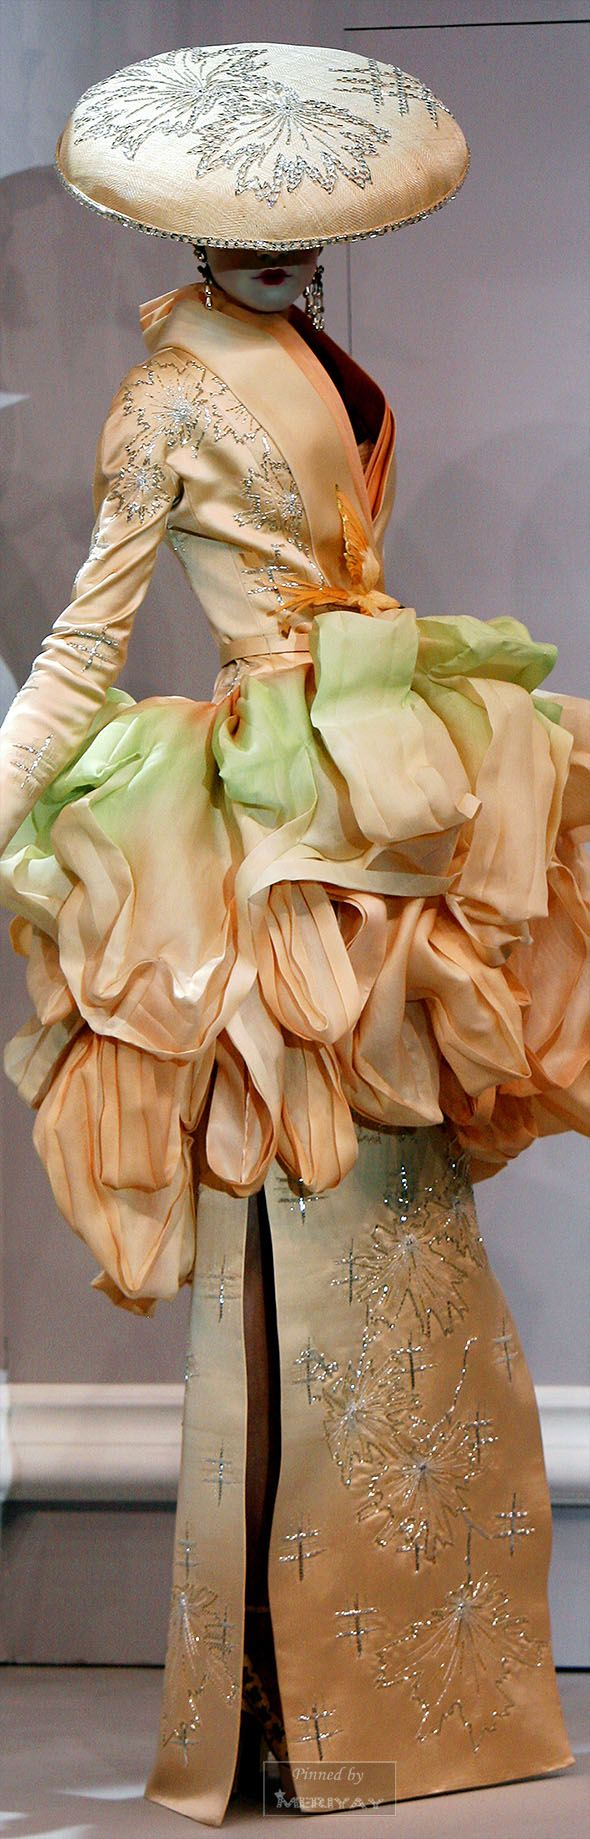 John Galliano For Christian Dior Spring/Summer 2007